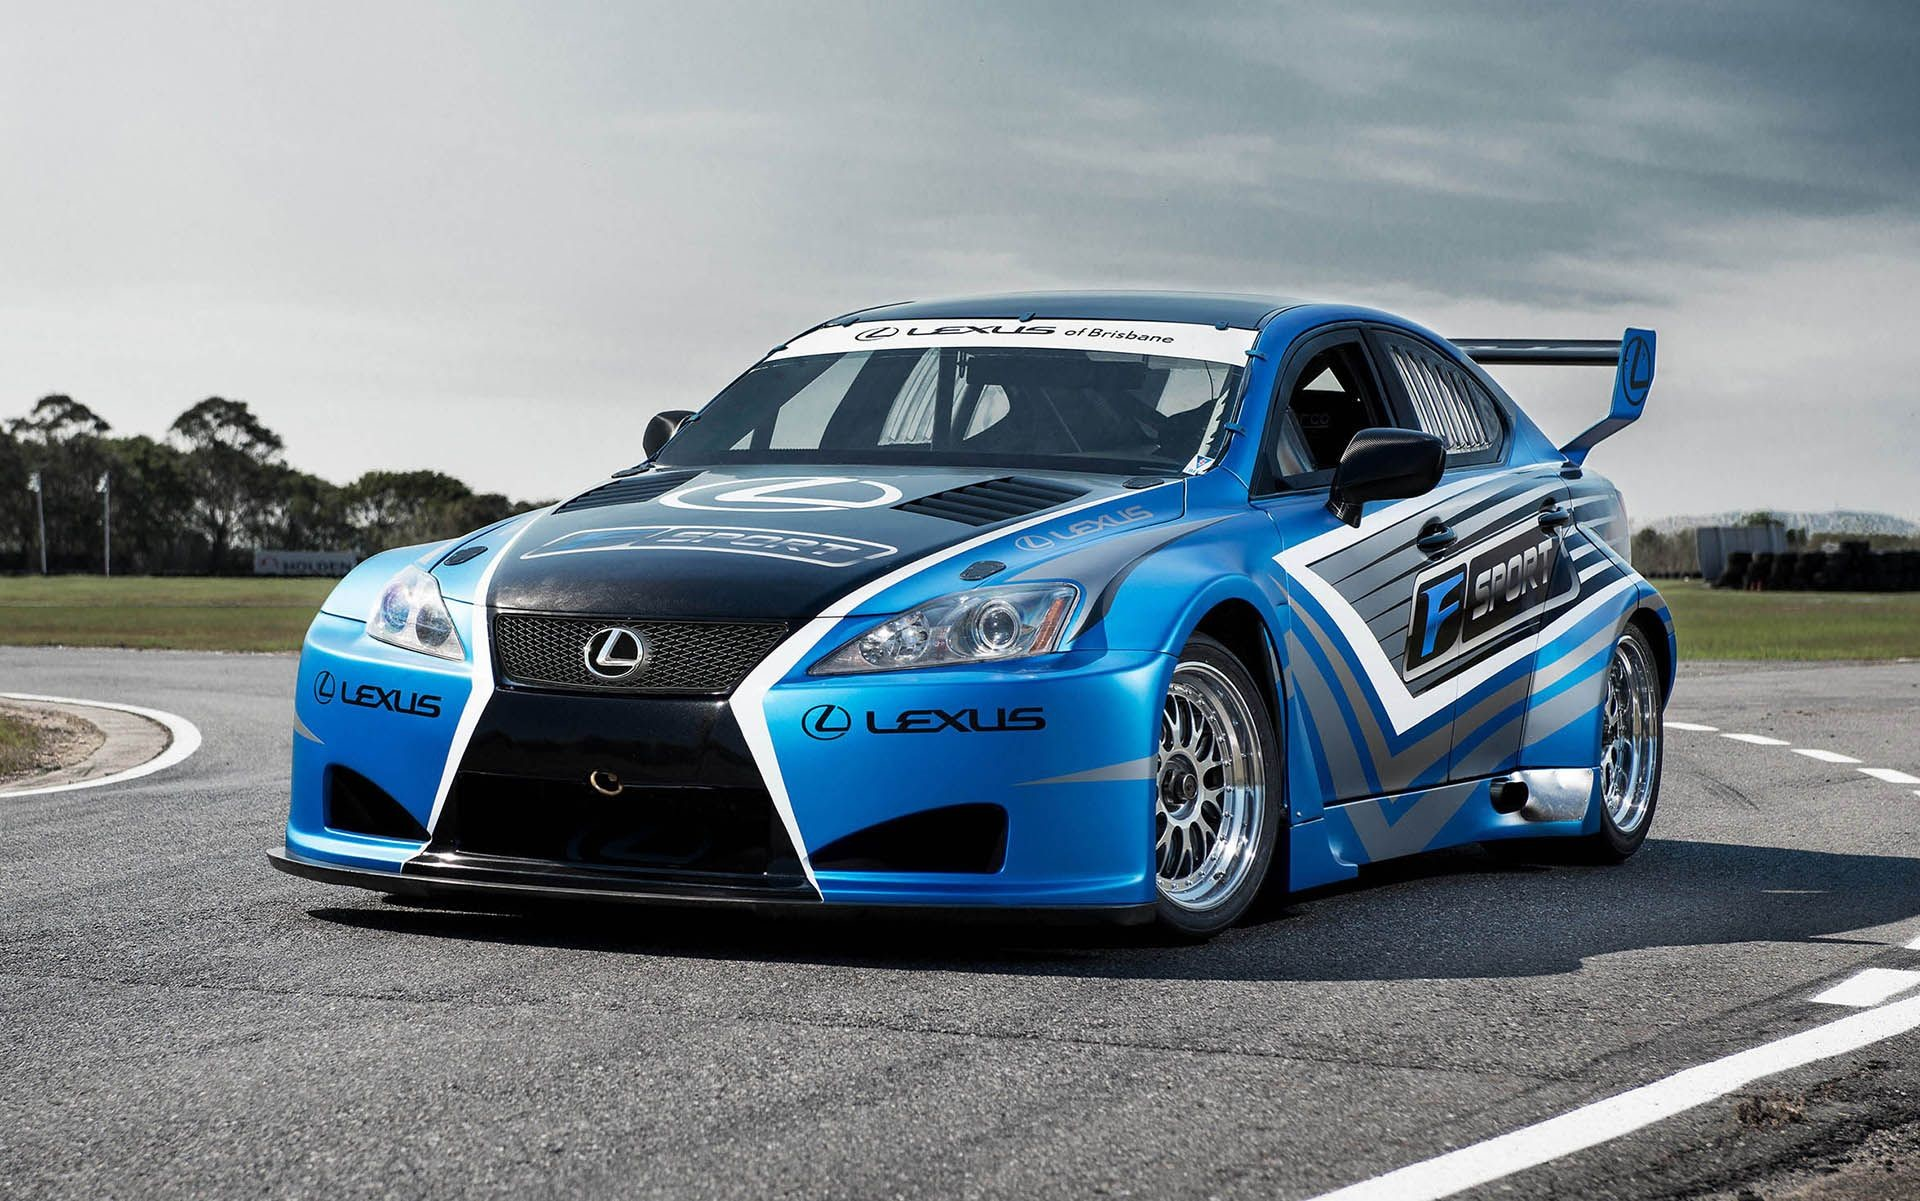 Res: 1920x1201, High Quality Racing Cars Wallpaper | Full HD Pictures